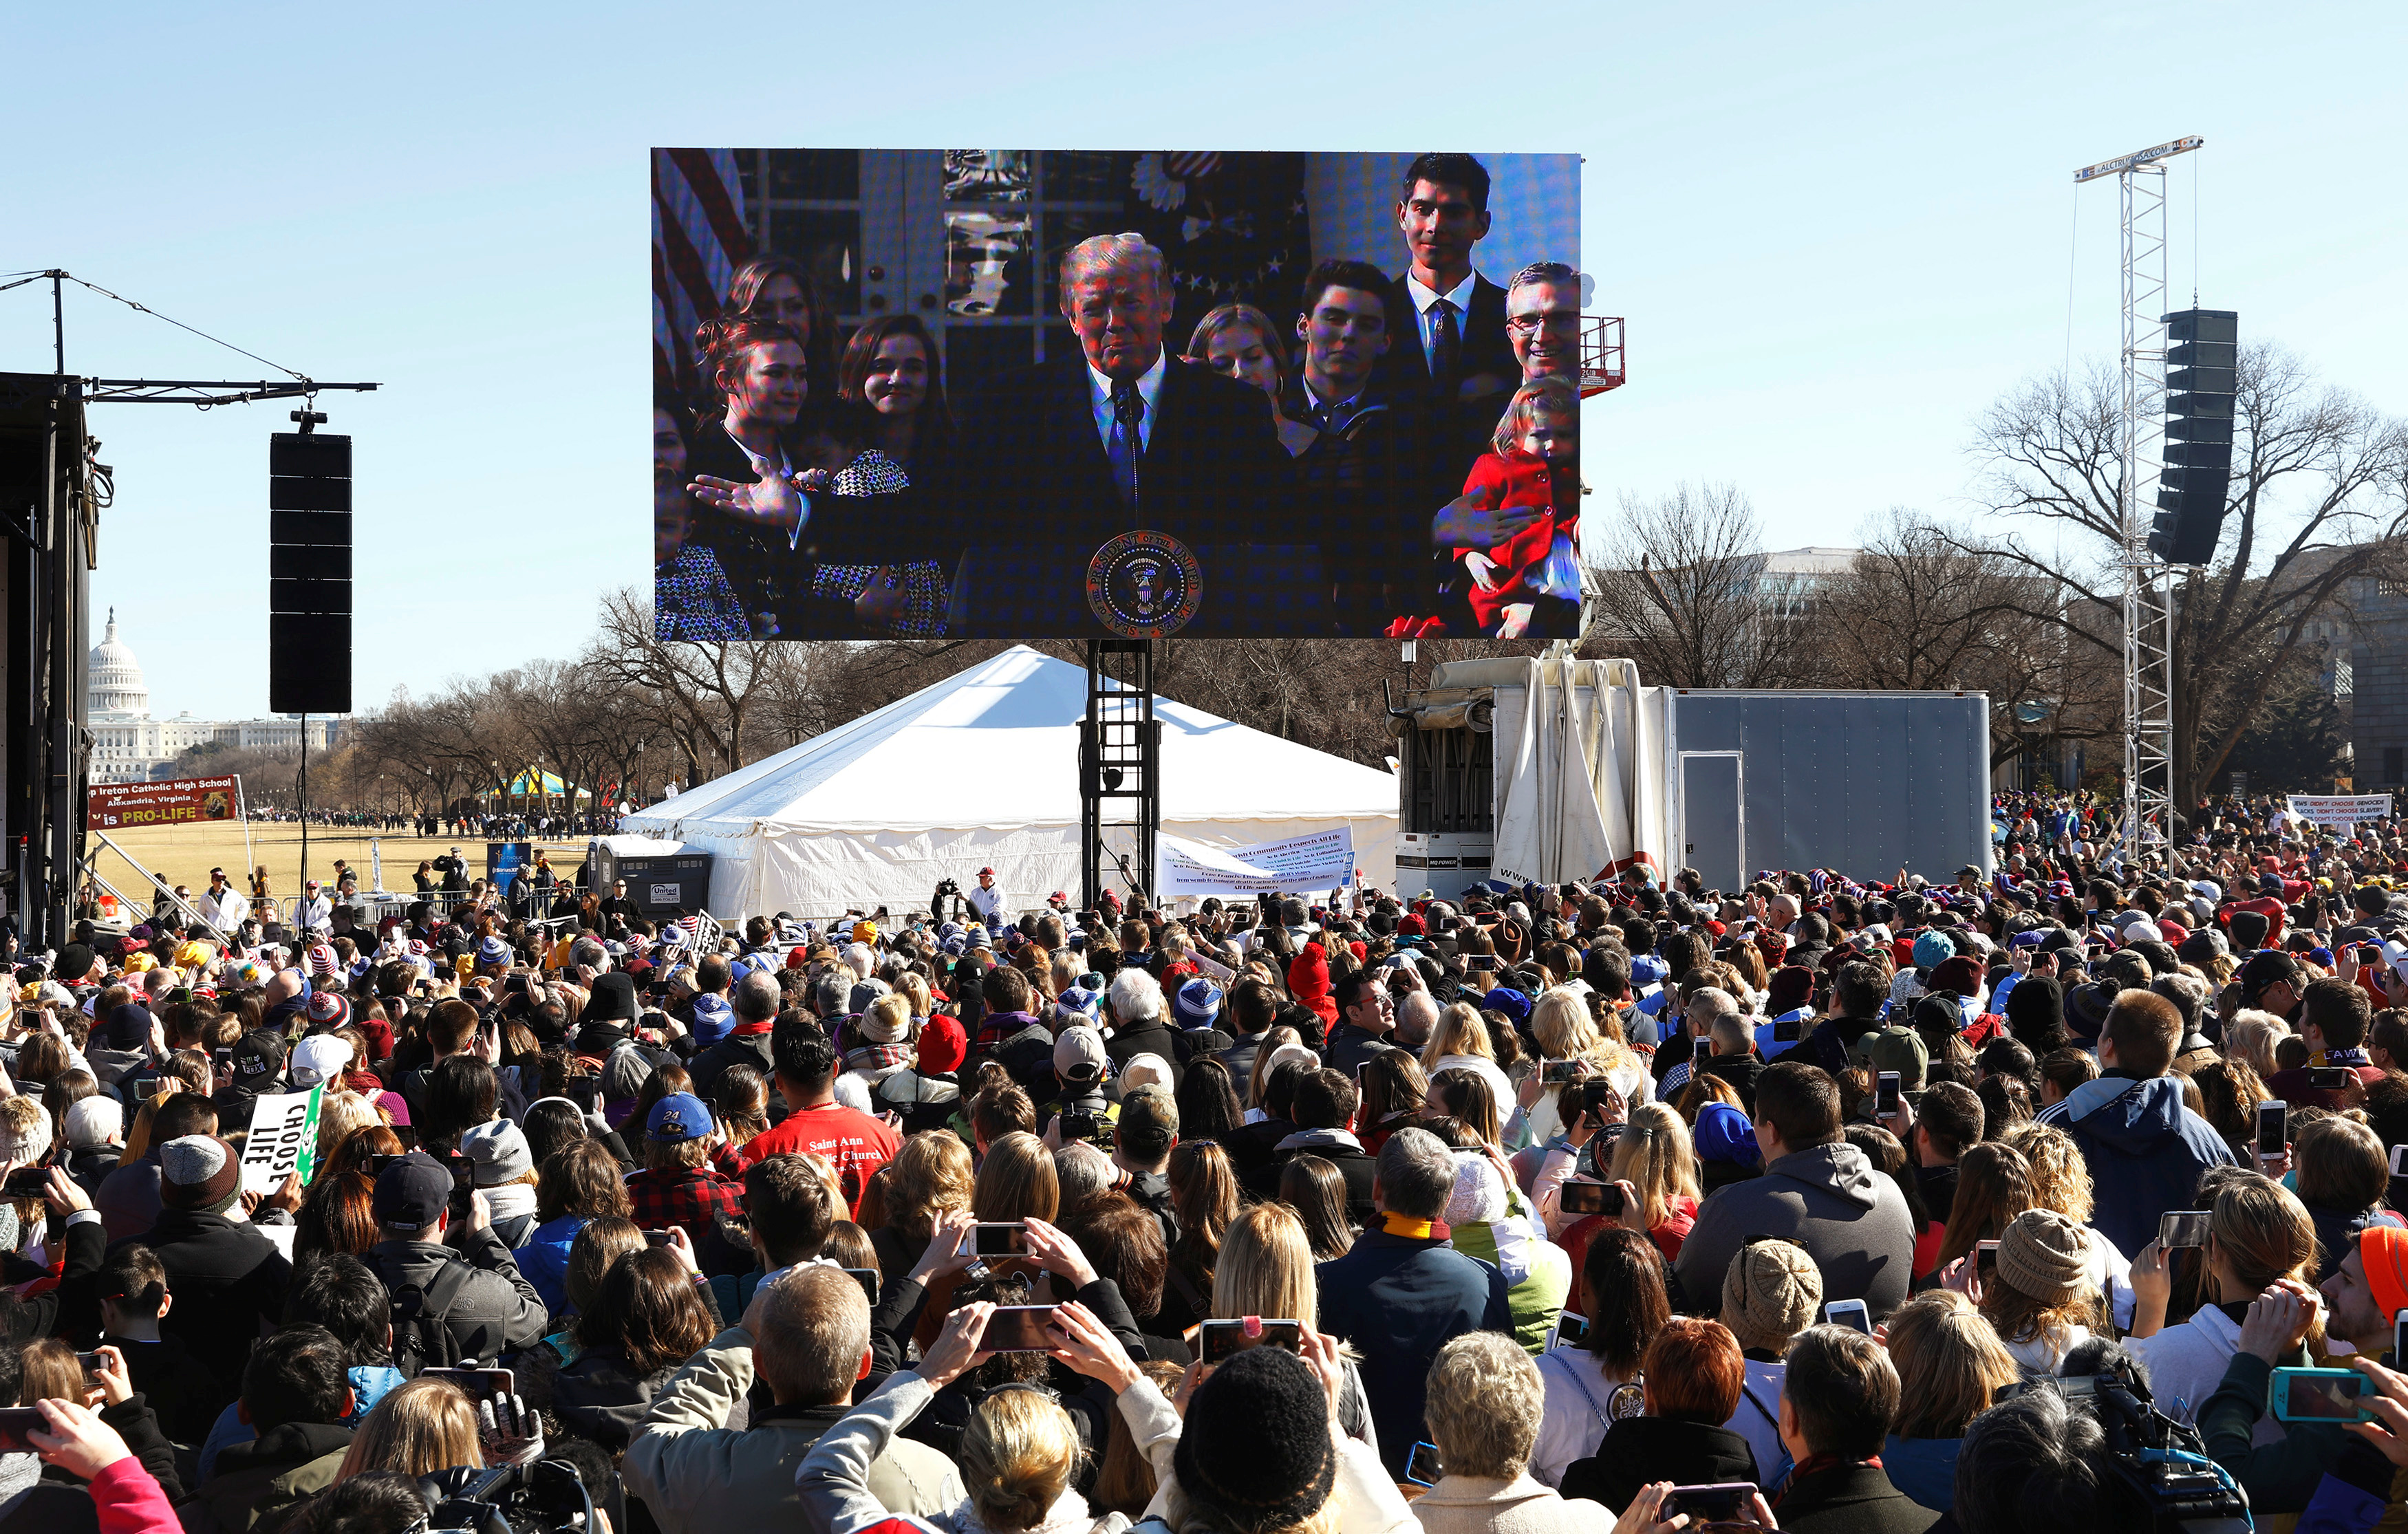 U.S. President Donald Trump, speaking from the nearby White House, addresses attendees of the March for Life rally by satellite in Washington, U.S. January 19, 2018. REUTERS/Eric Thayer